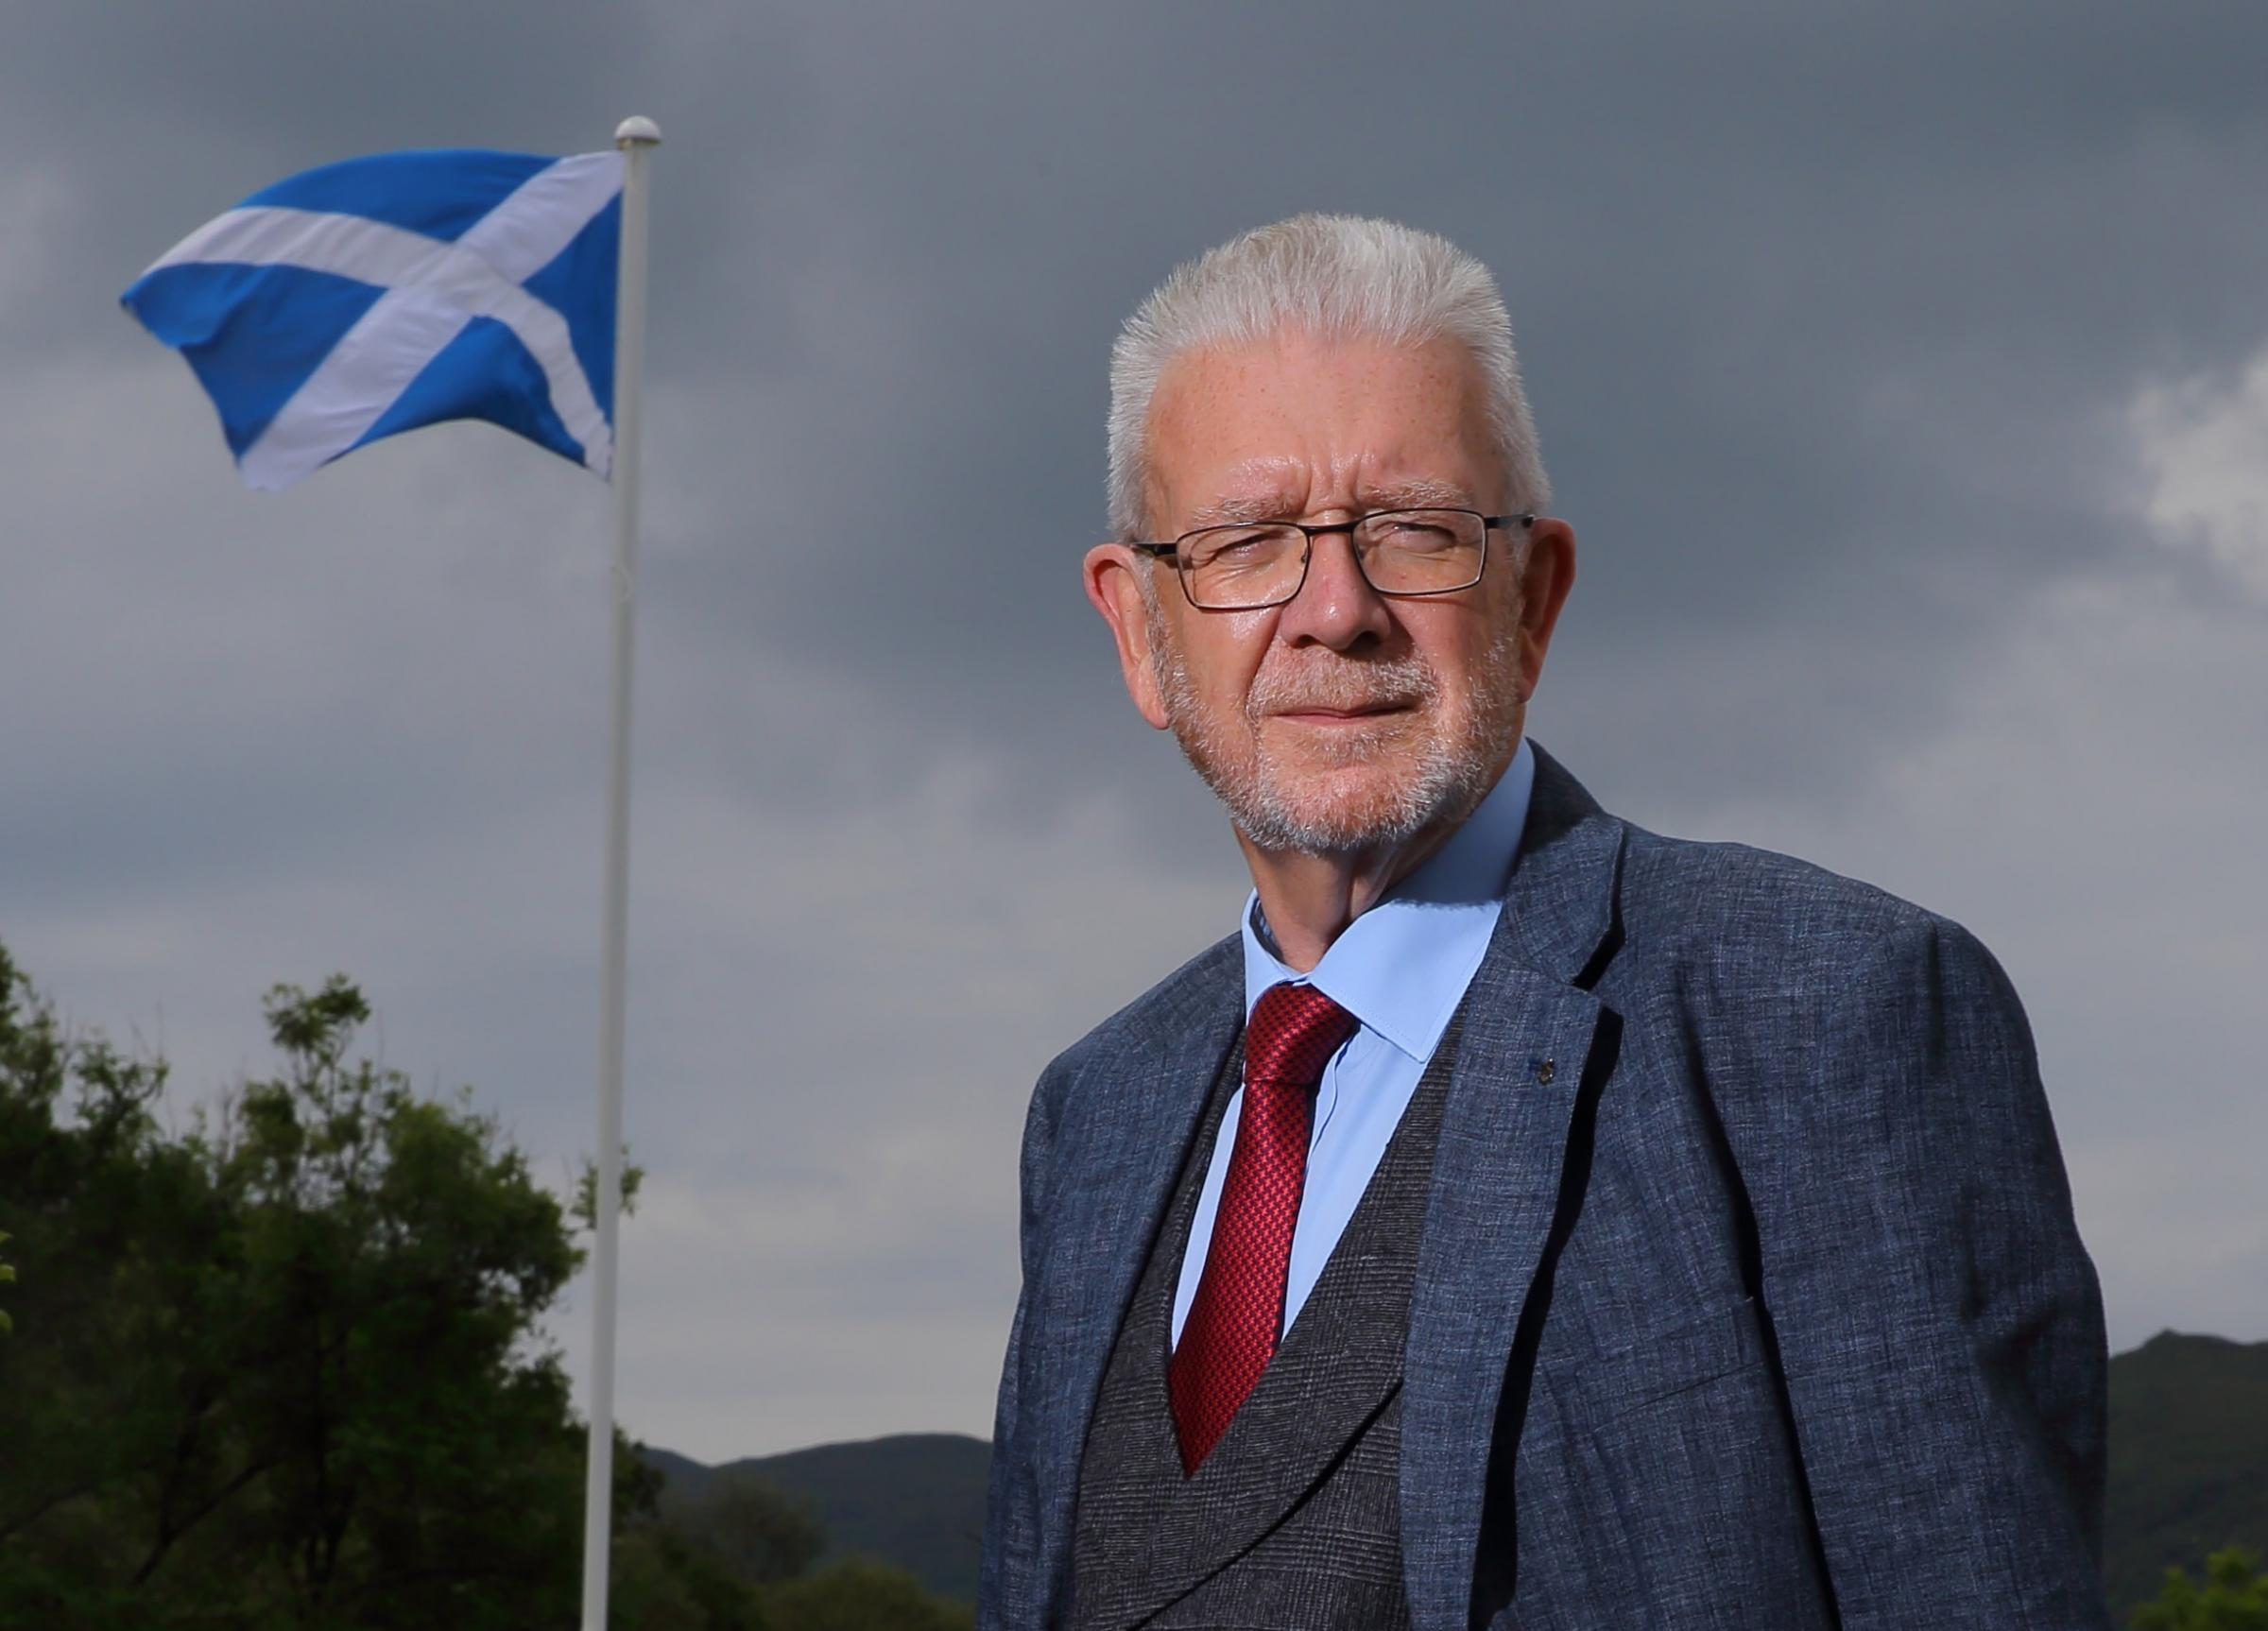 Michael Russell brands BBC's coverage of Scotland an 'open sore'